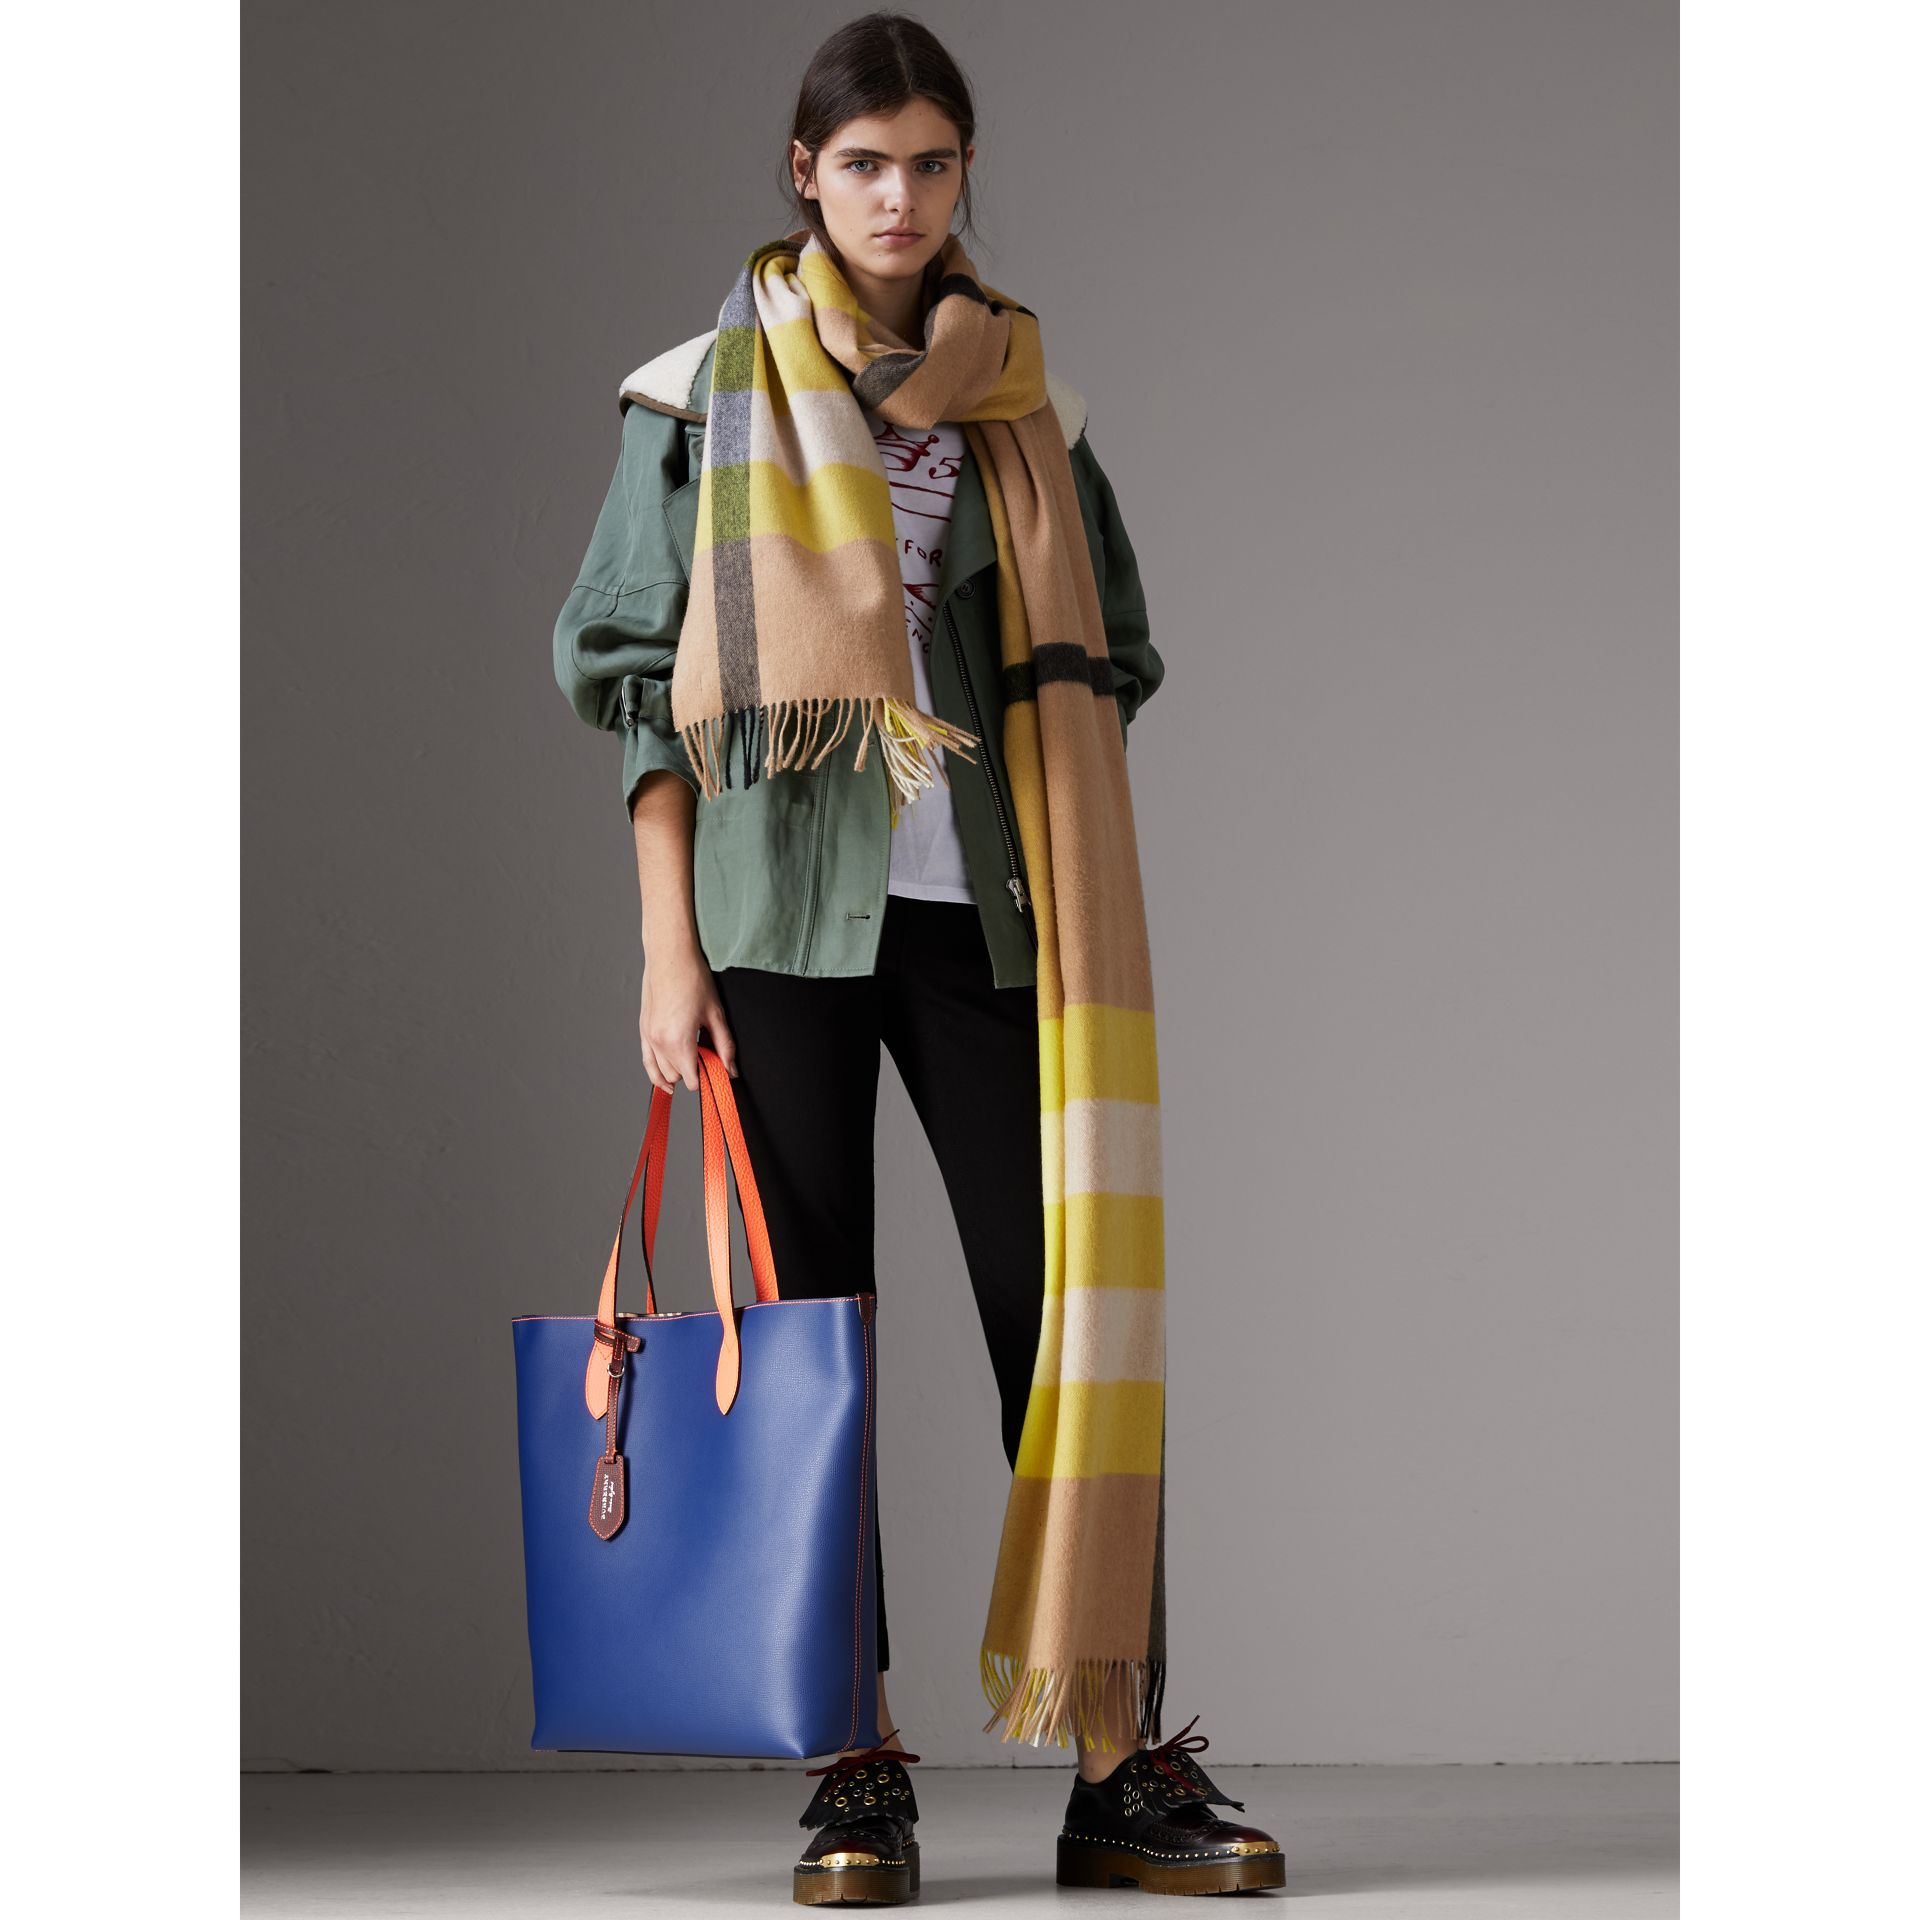 Medium Two-tone Coated Leather Tote in Dark Ultramarine | Burberry - gallery image 2